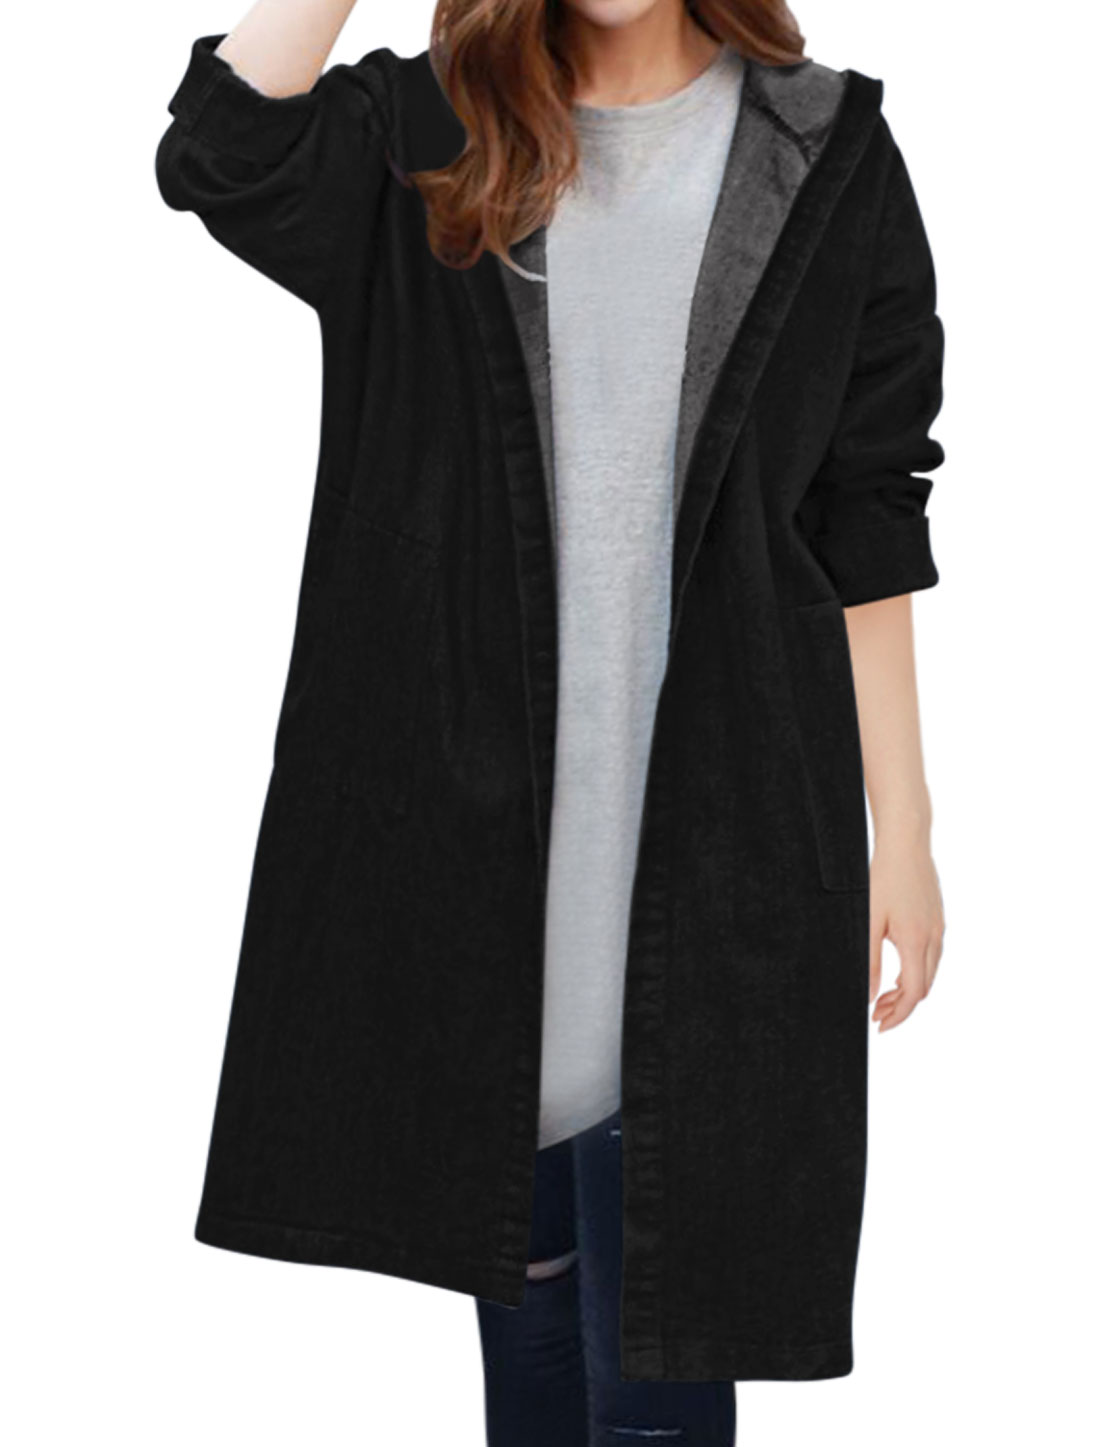 Women Open Front Knee Length Loose Hooded Denim Cardigan Black XS